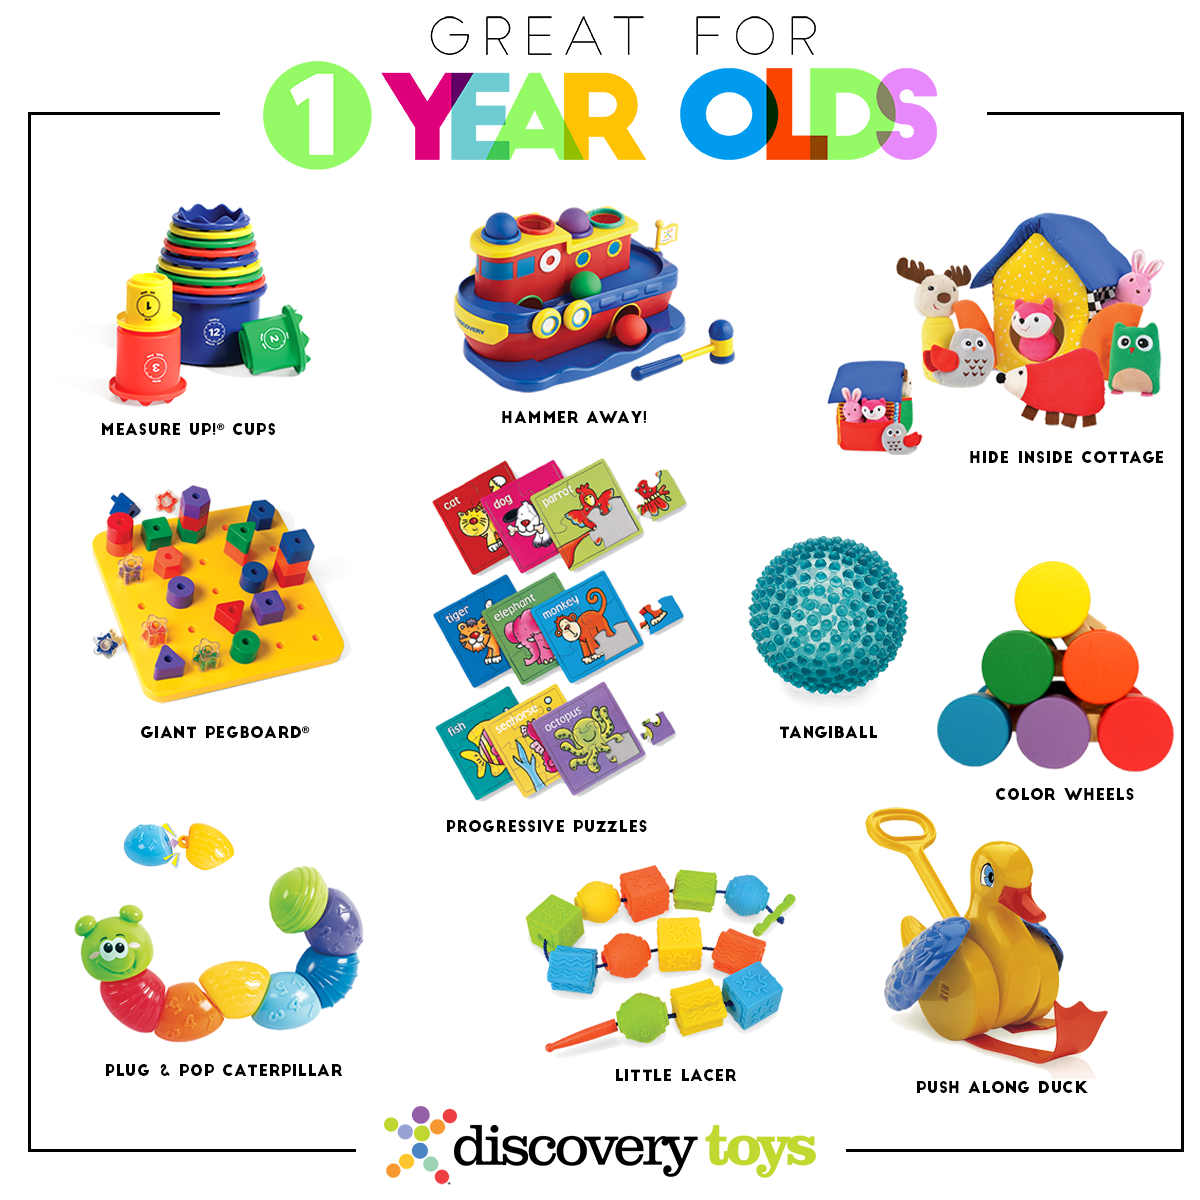 discovery toys great for 1 year olds_2017 2018 - Christmas Presents For 1 Year Old